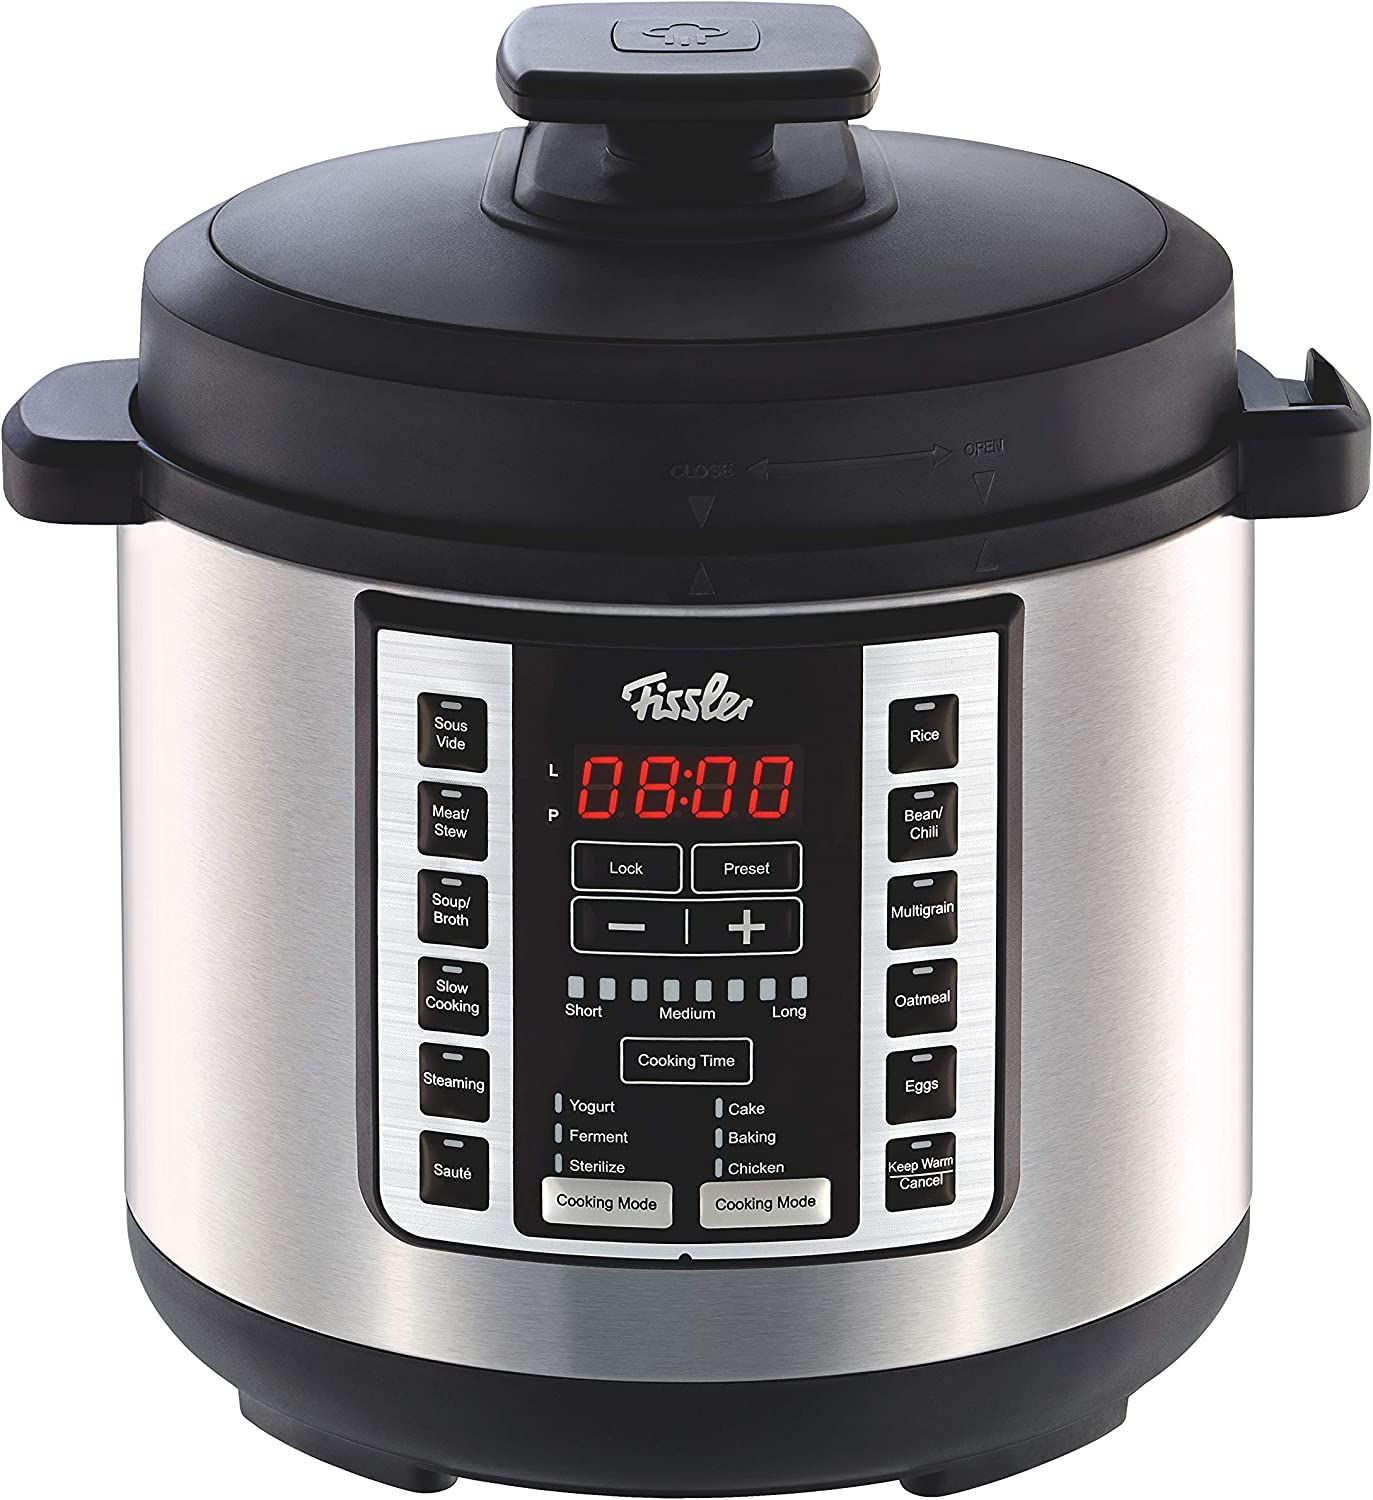 Souspreme Multi Pot This all-around kitchen appliance offers the best in fast cooking and slow cooking – plus integrated sous vide. It's on trend with 18 one-touch cooking programs, from steaming or sautéing to sous vide, fermenting and many more. Use it for soups, meats, stews, poultry, eggs, grains, beans, chili, yogurt, dough, cake and more – endless possibilities.